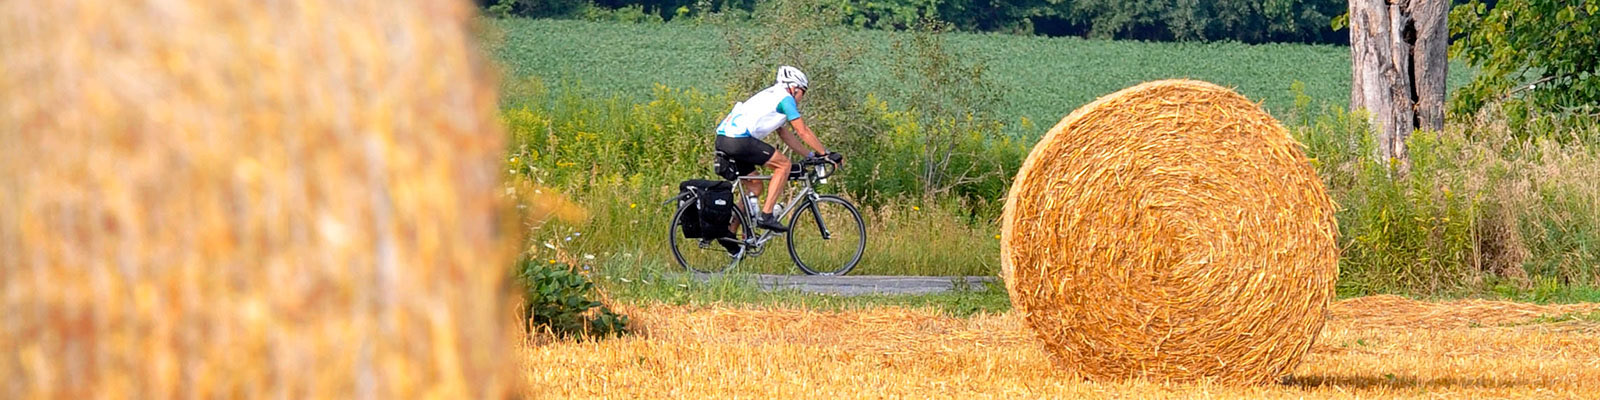 Photo-Cyclist_Hay_Bale-2015-08-18_Great_Waterfront_Trail_Adventure_2015_Greenbelt_Route_Special_Edition_c_Simon_Wilson_230.jpg